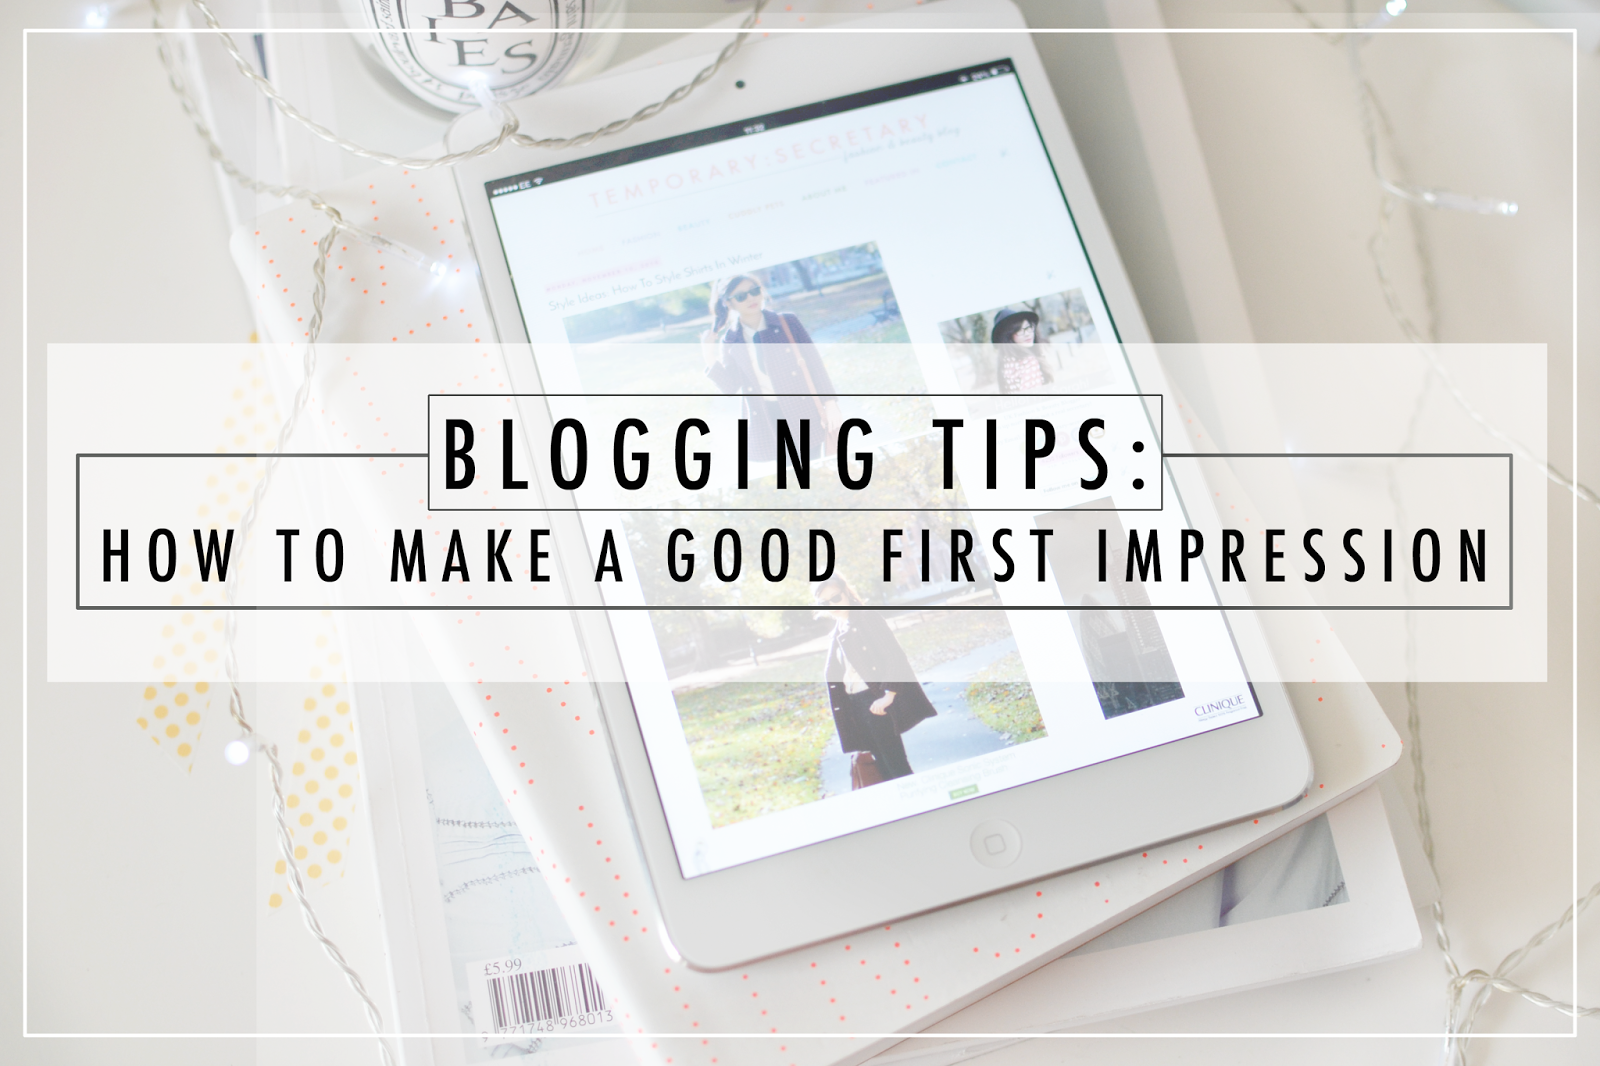 blogging advice, how to make a good first impression bloggers, fashion blog tips, beauty blog tips